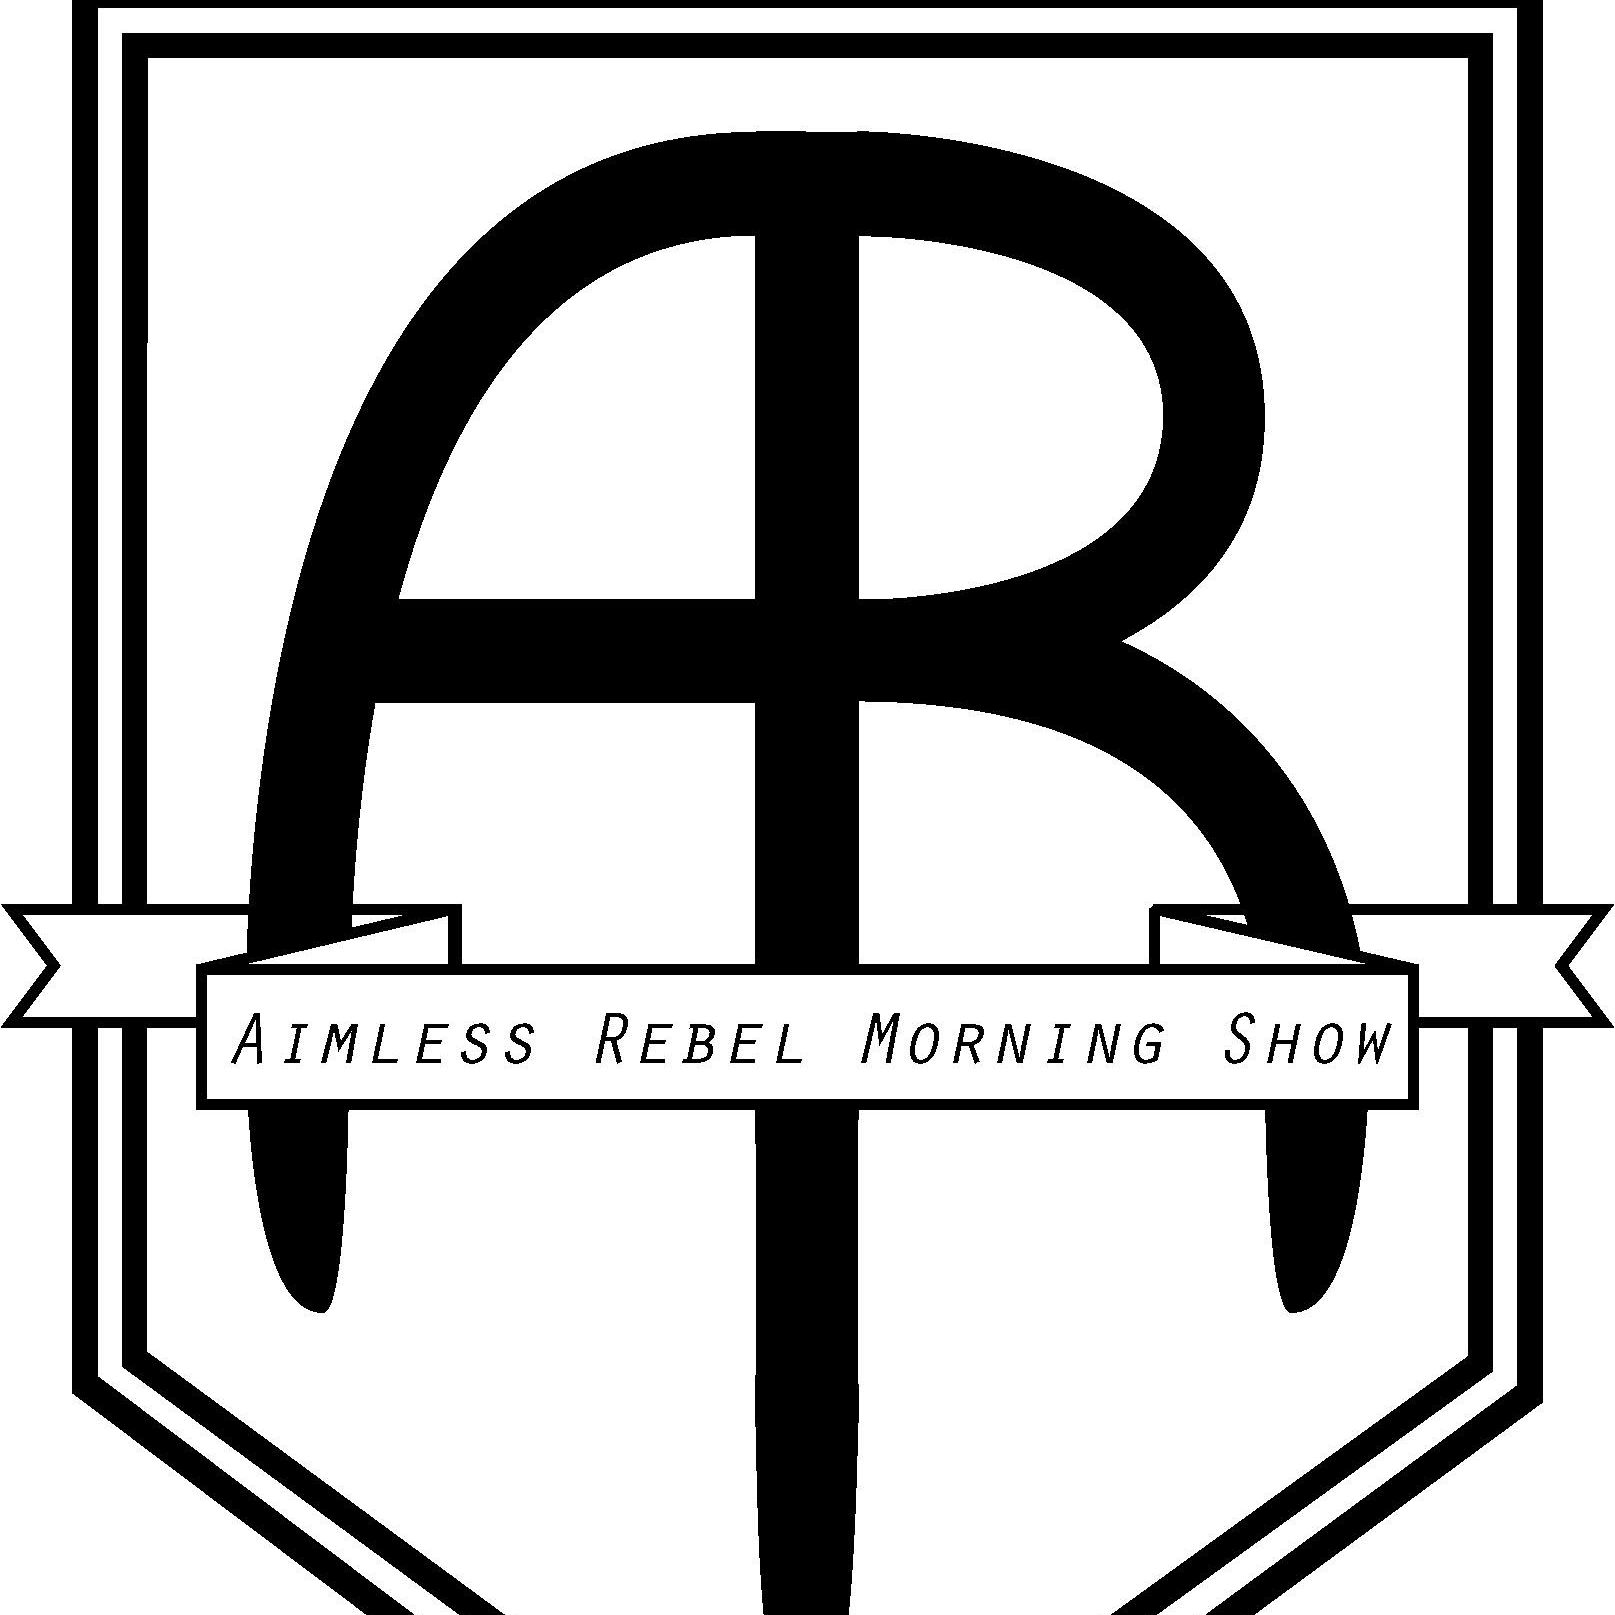 Aimless Rebel Morning